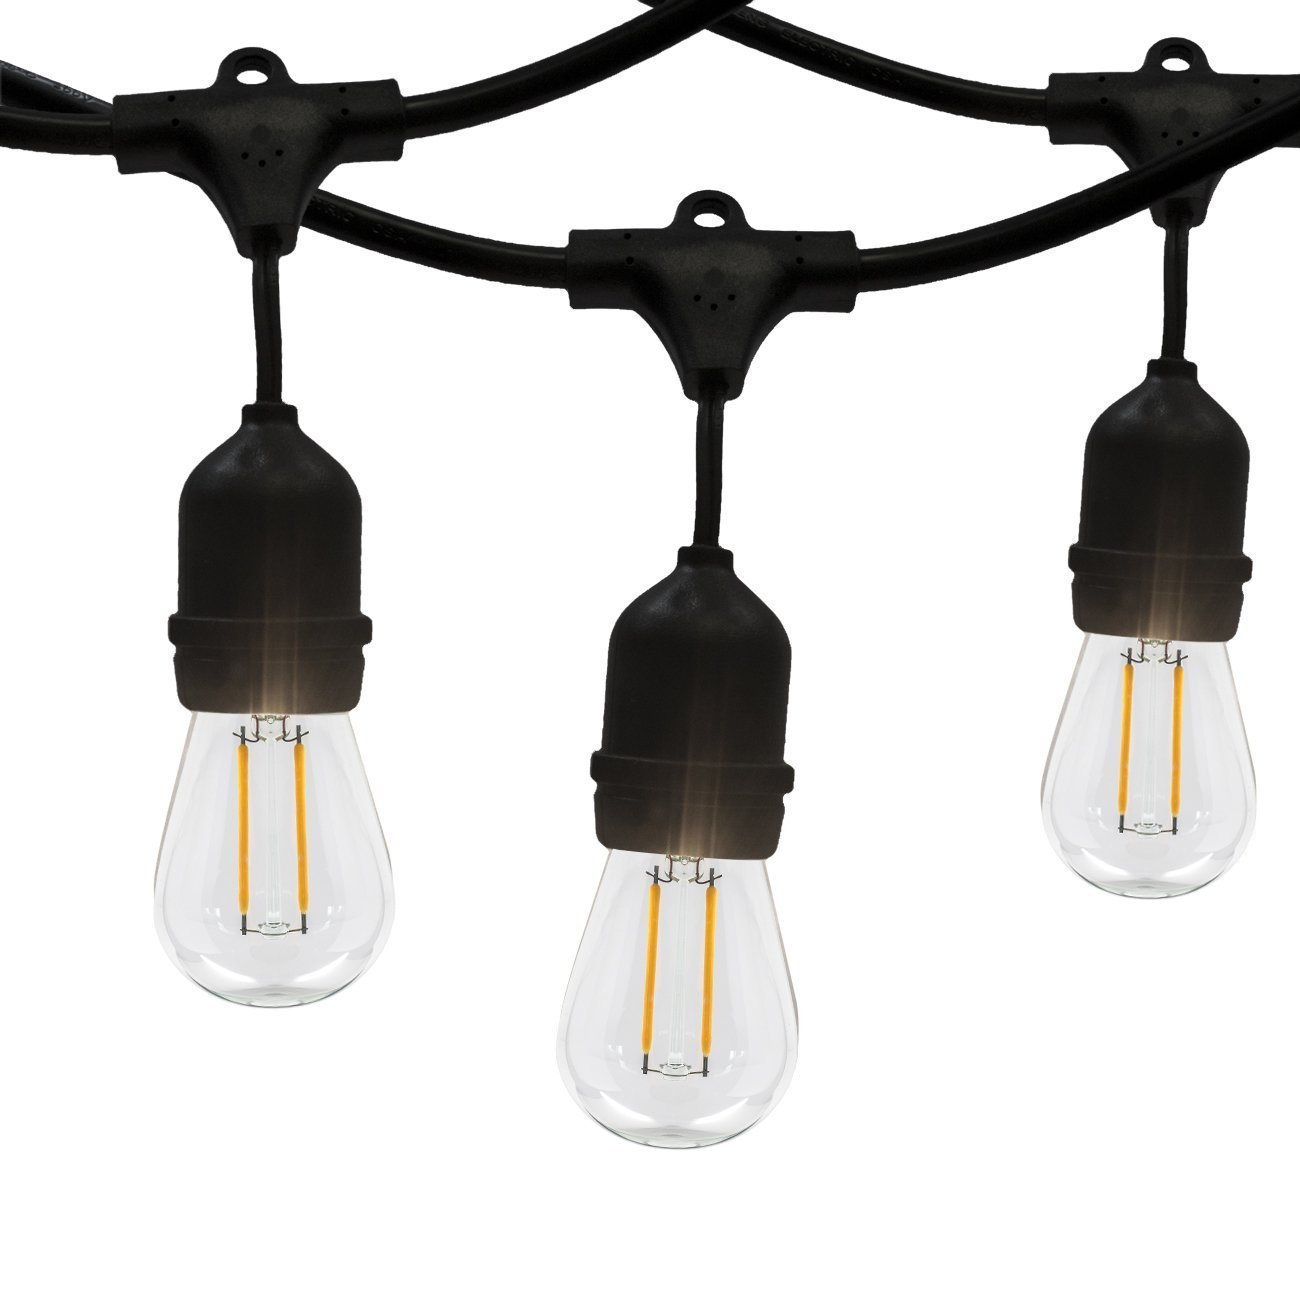 Outdoor String Lights,WONFAST Commercial Weatherproof E26 Edison Bulbs Style 23-Feet LED String Lights with S14 12 Bulbs and 12 Sockets